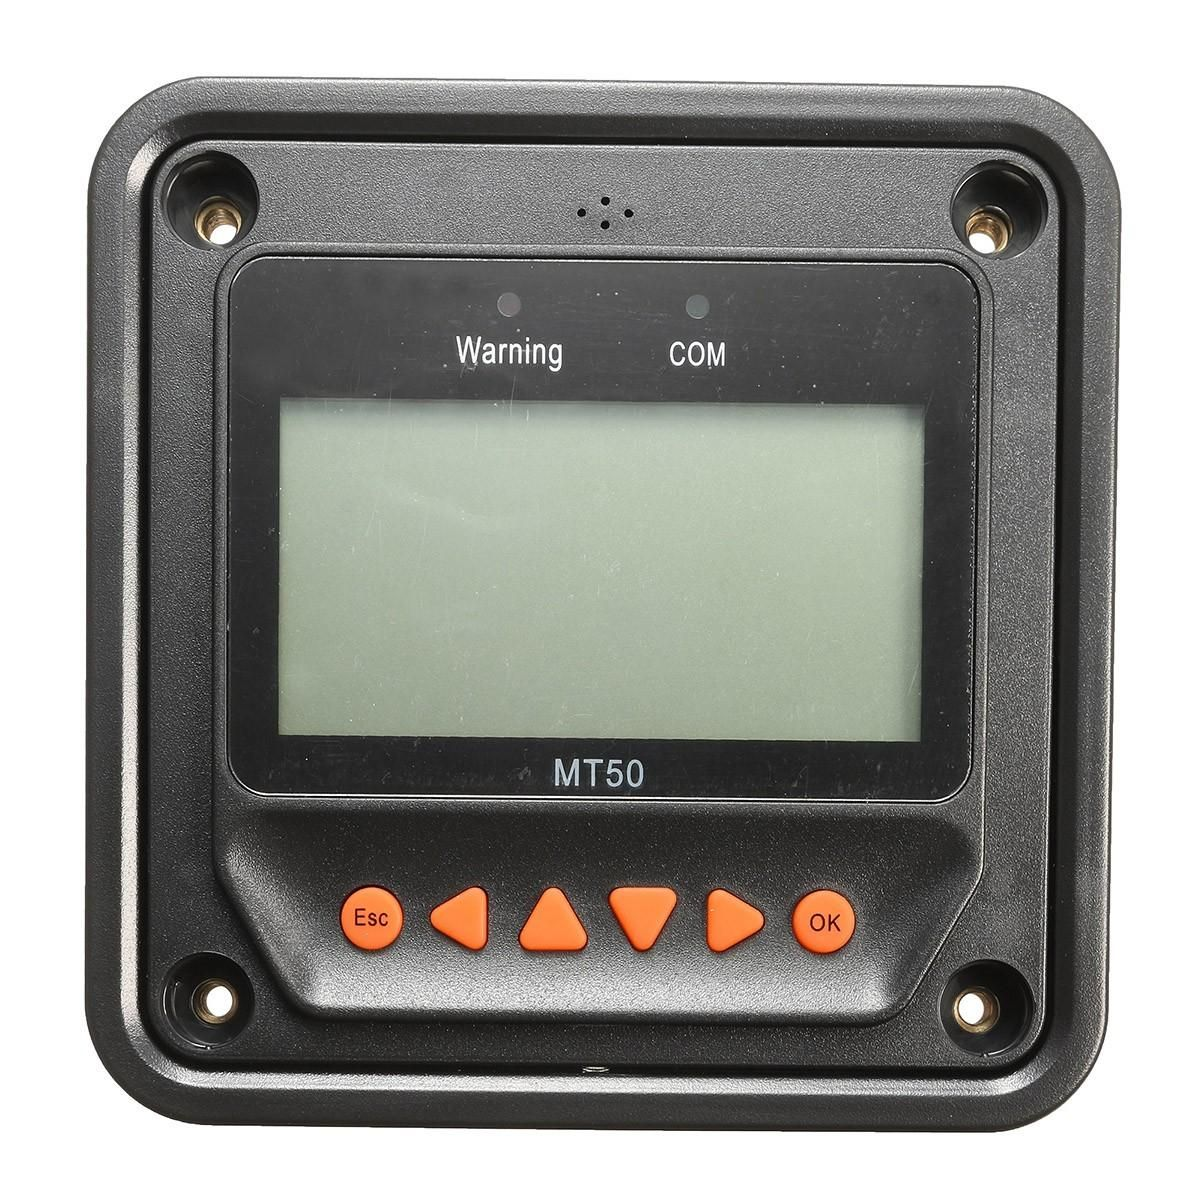 EPEVER MT50 Black Remote Meter LCD Diaplay For Solar Charge Controller Regulator